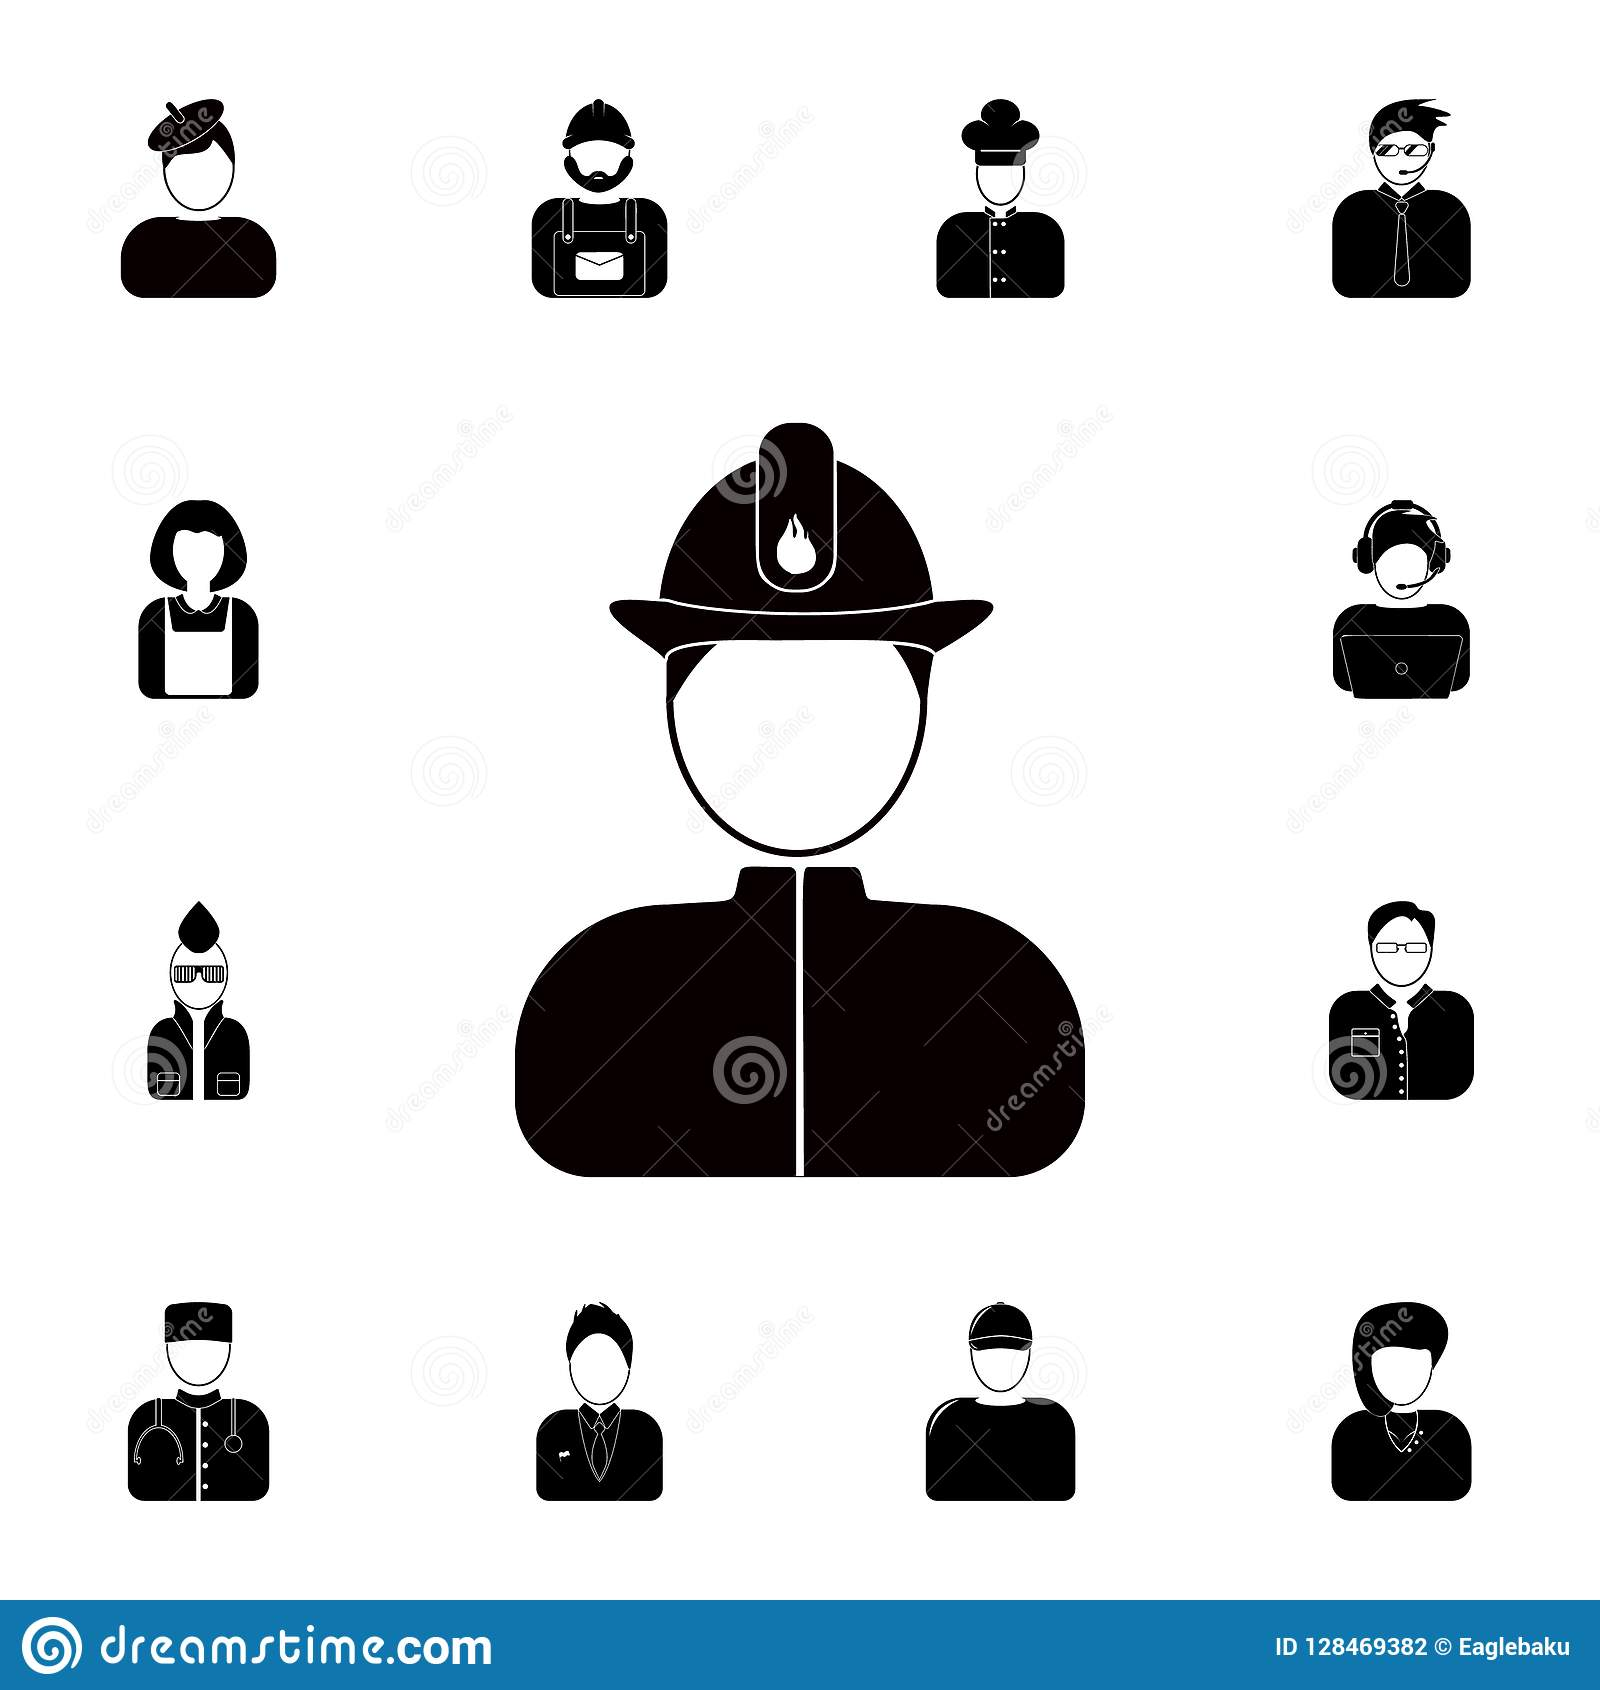 Fireman avatar icon. Detailed set of avatars of profession icons. Premium quality graphic design icon. One of the collection icons